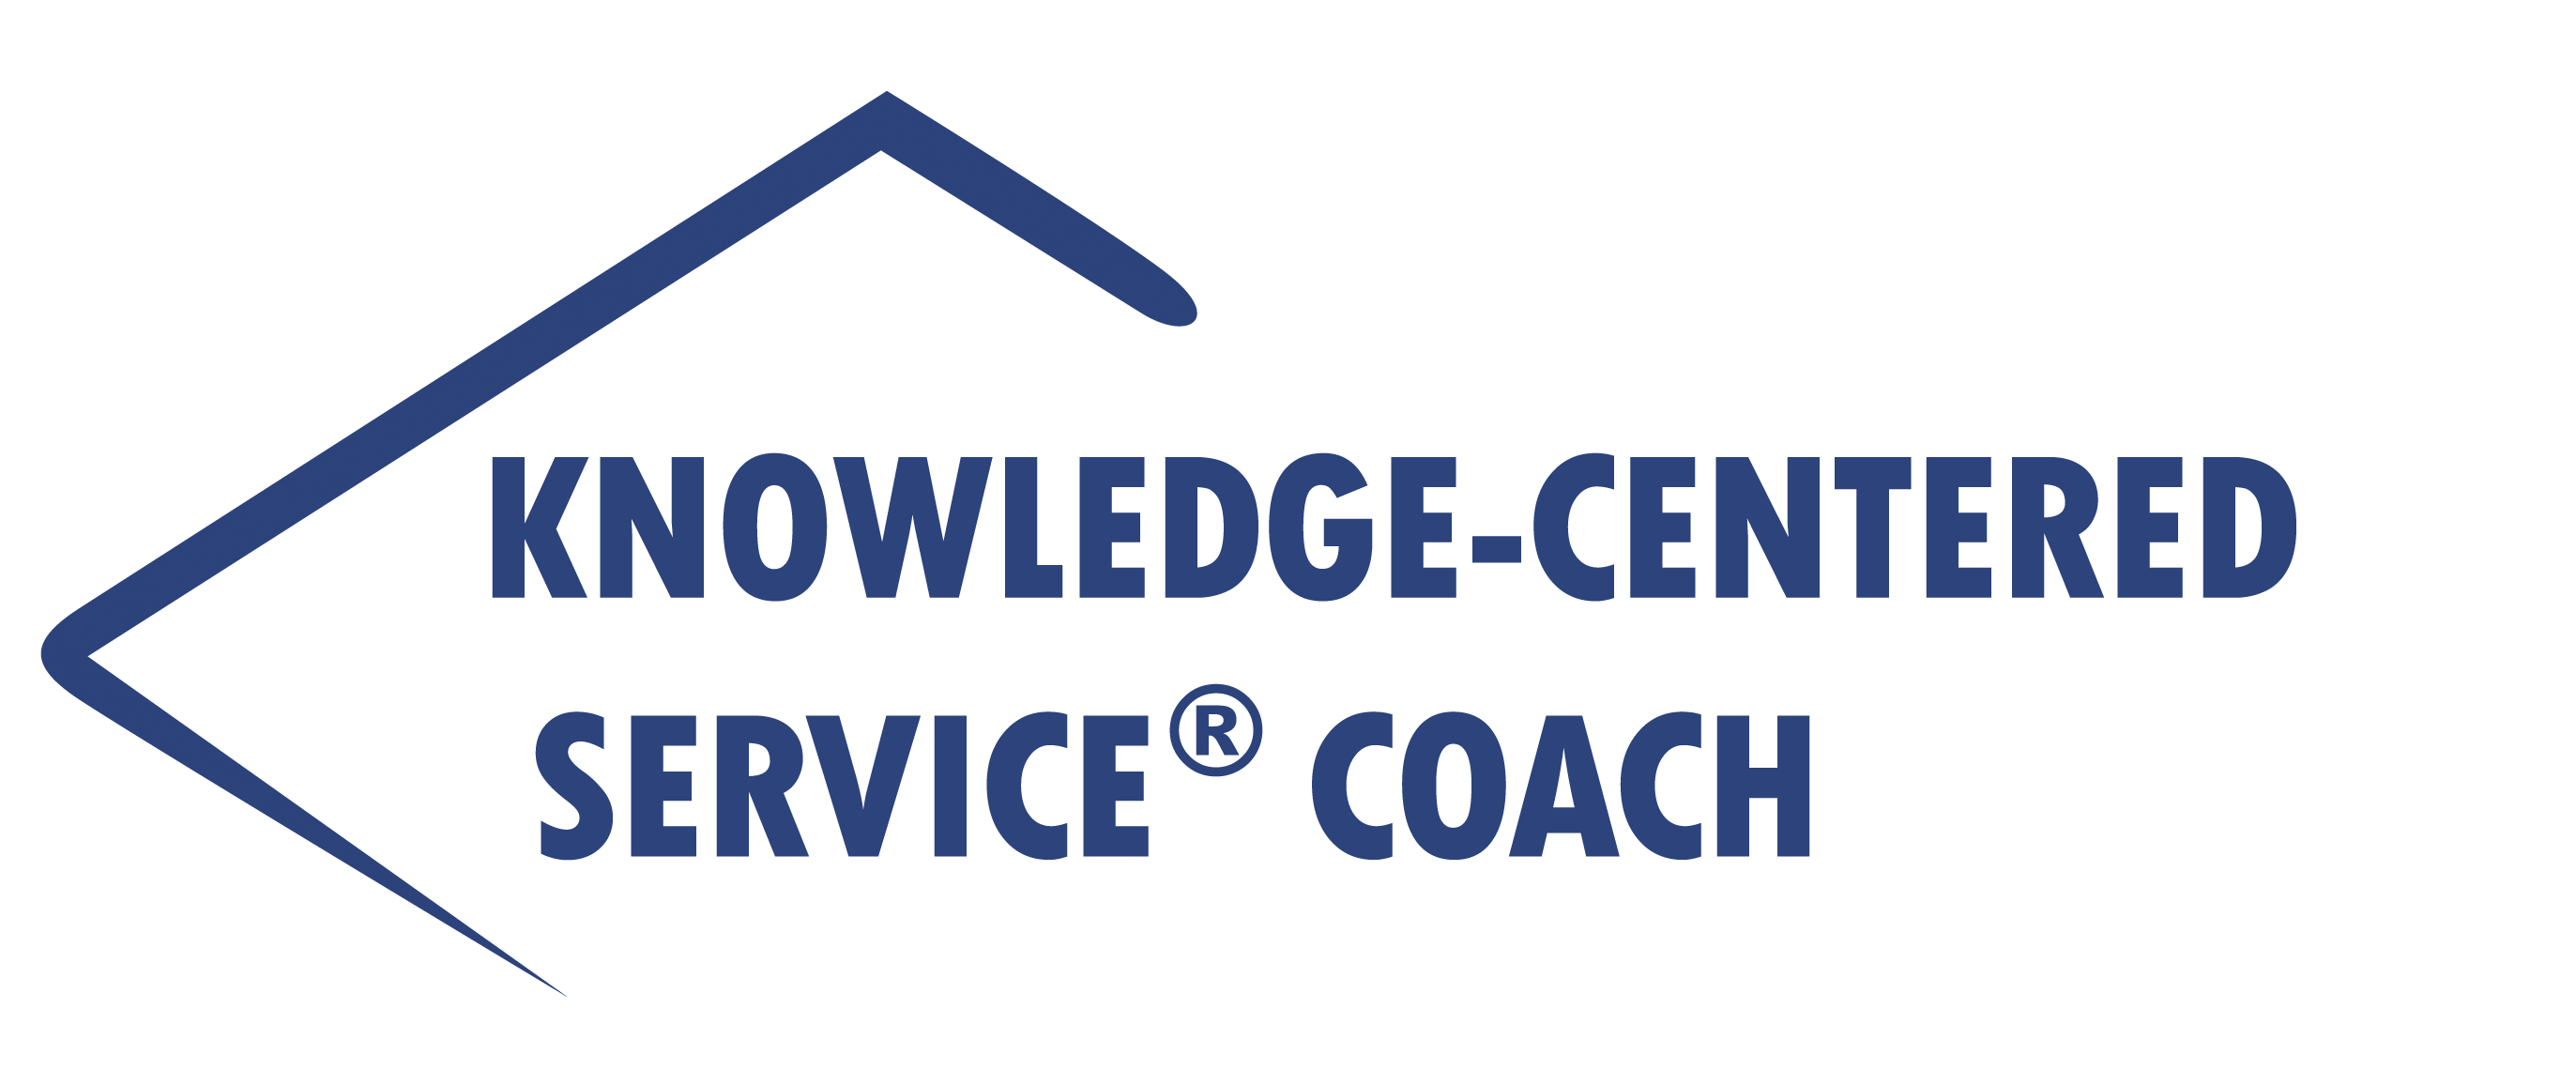 Knowledge-Centered Service Coach